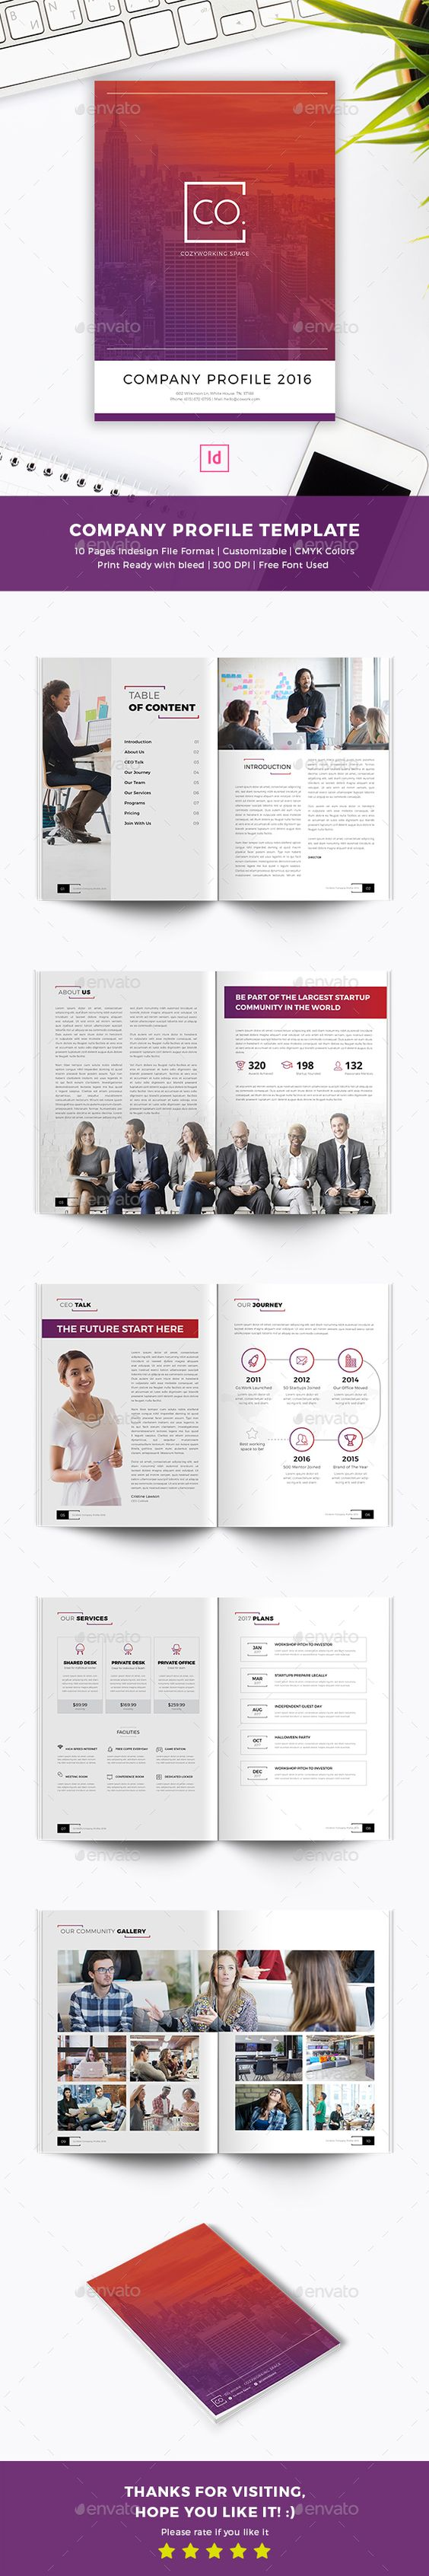 cowork company profile indesign template templates brochures cowork company profile template indesign indd